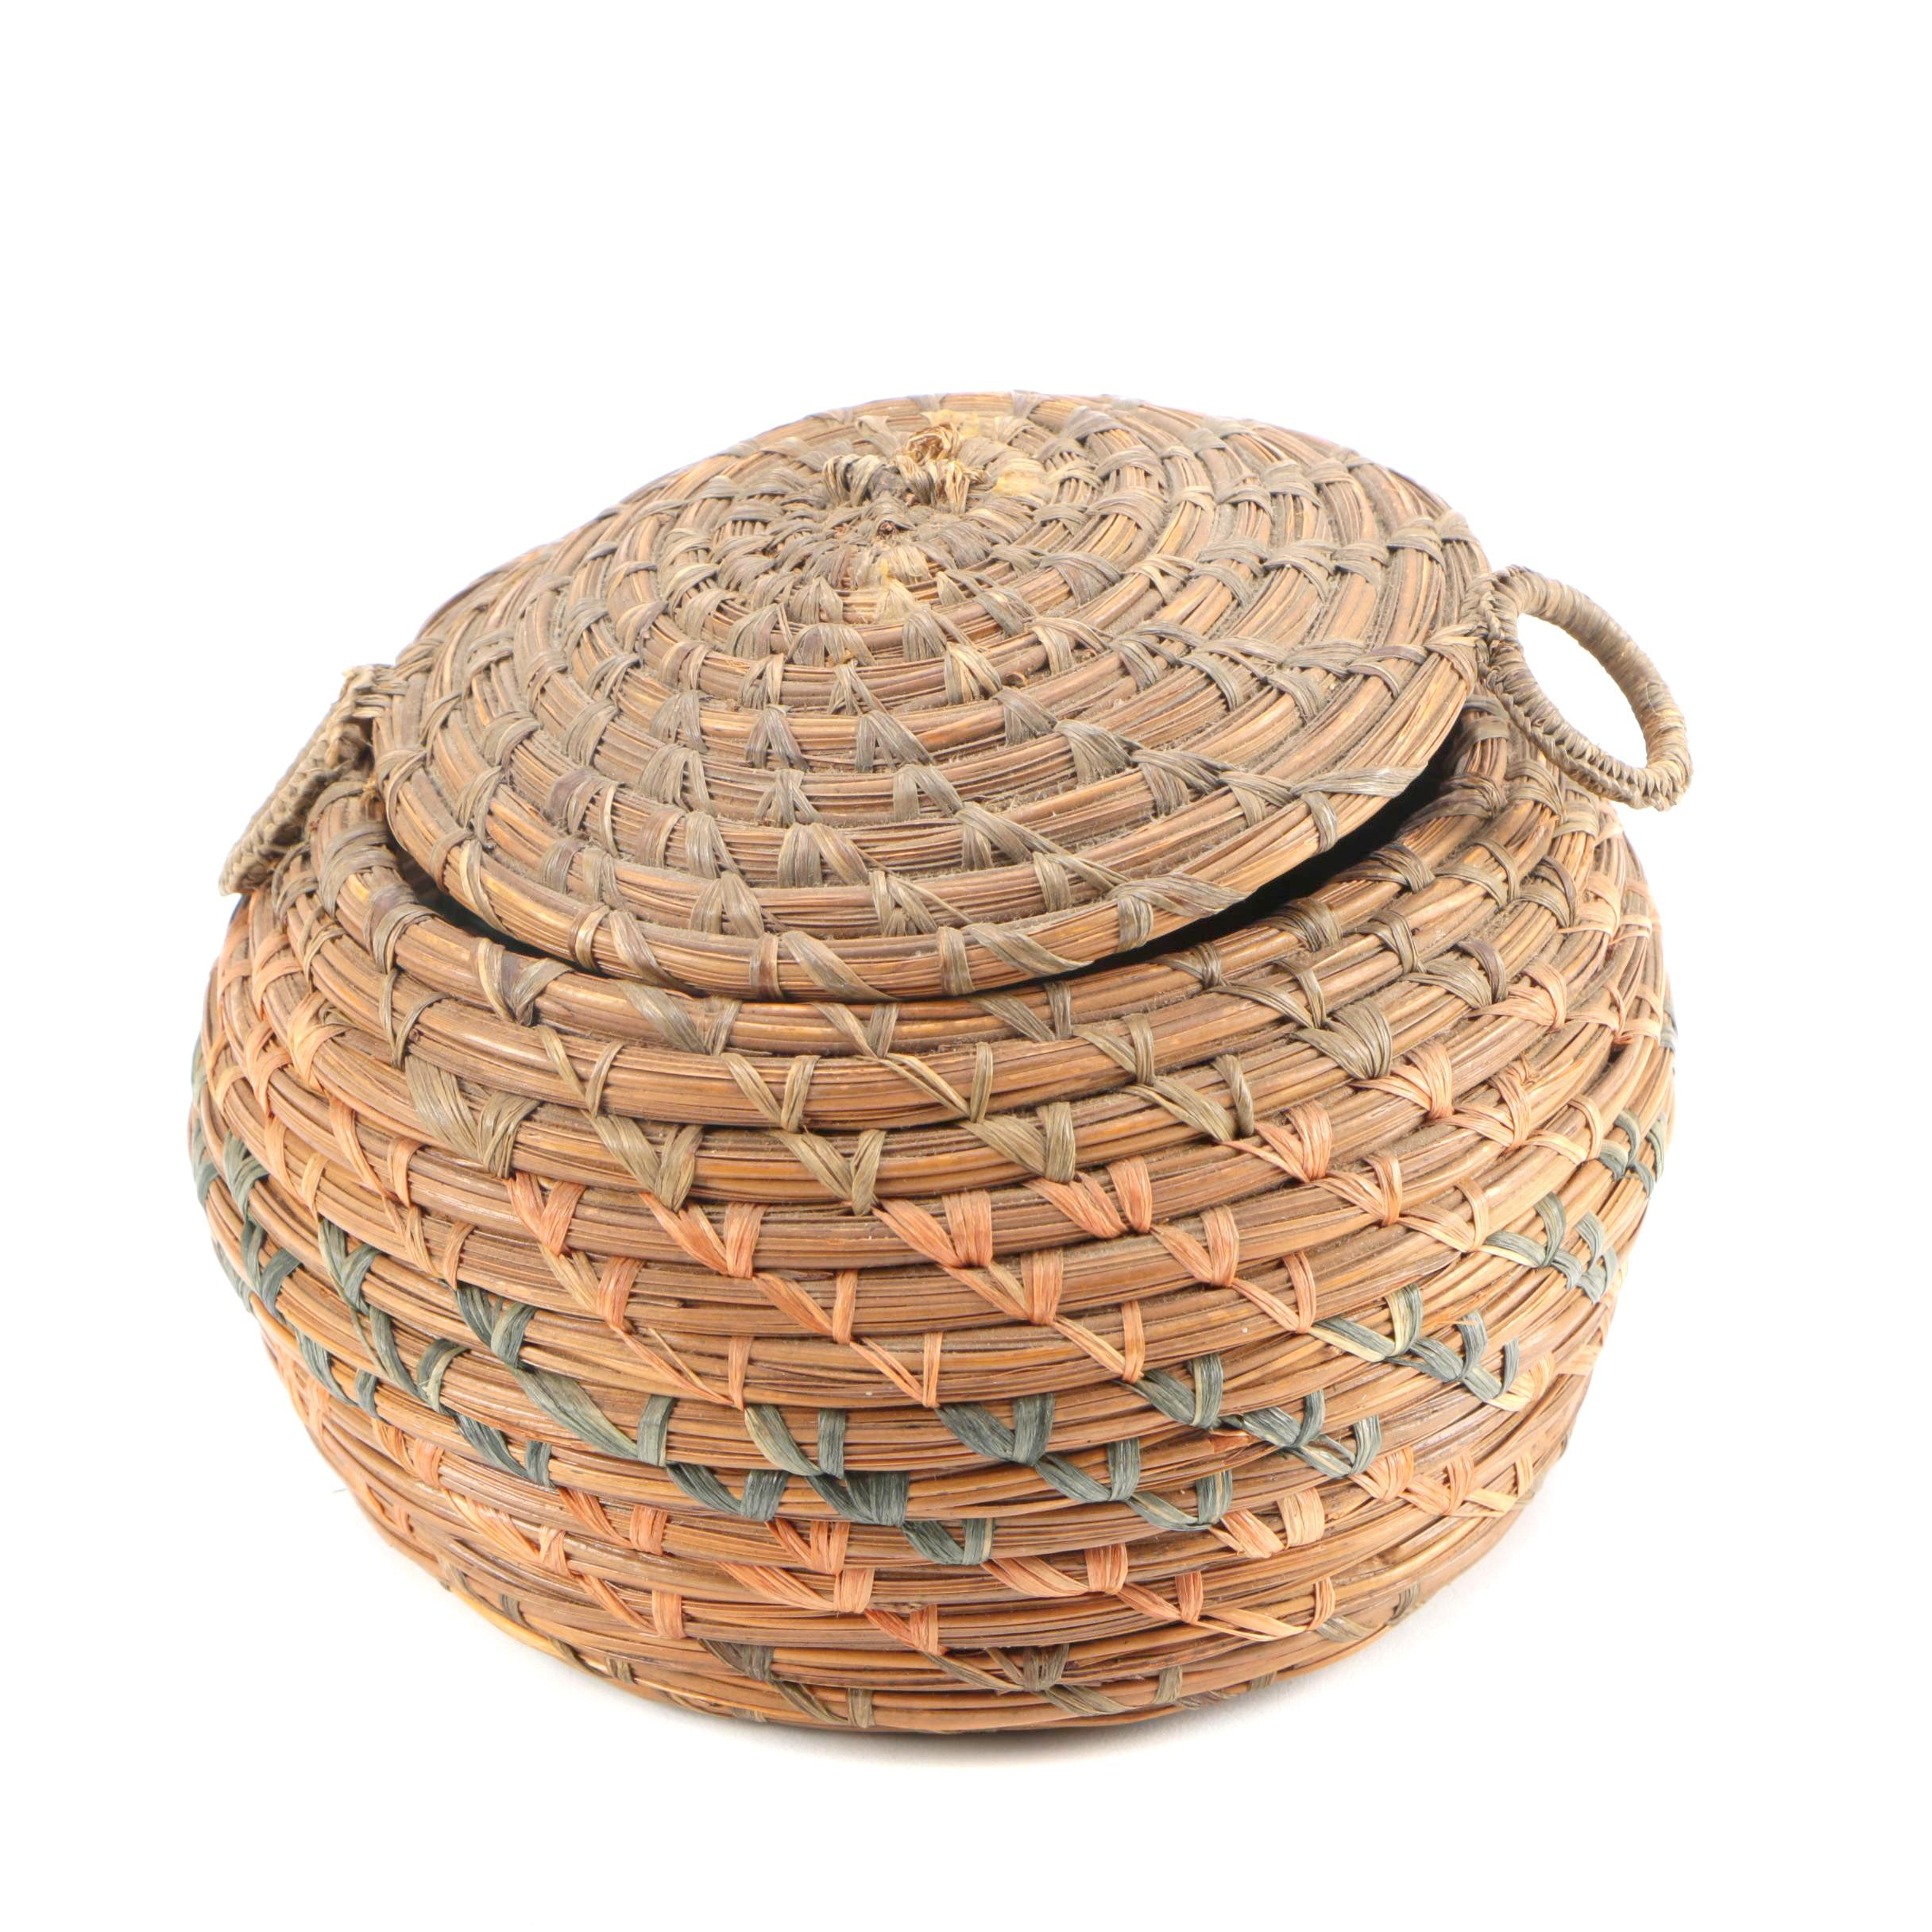 Handmade Sphere-Shaped Pine Needle Coil Basket with Lid